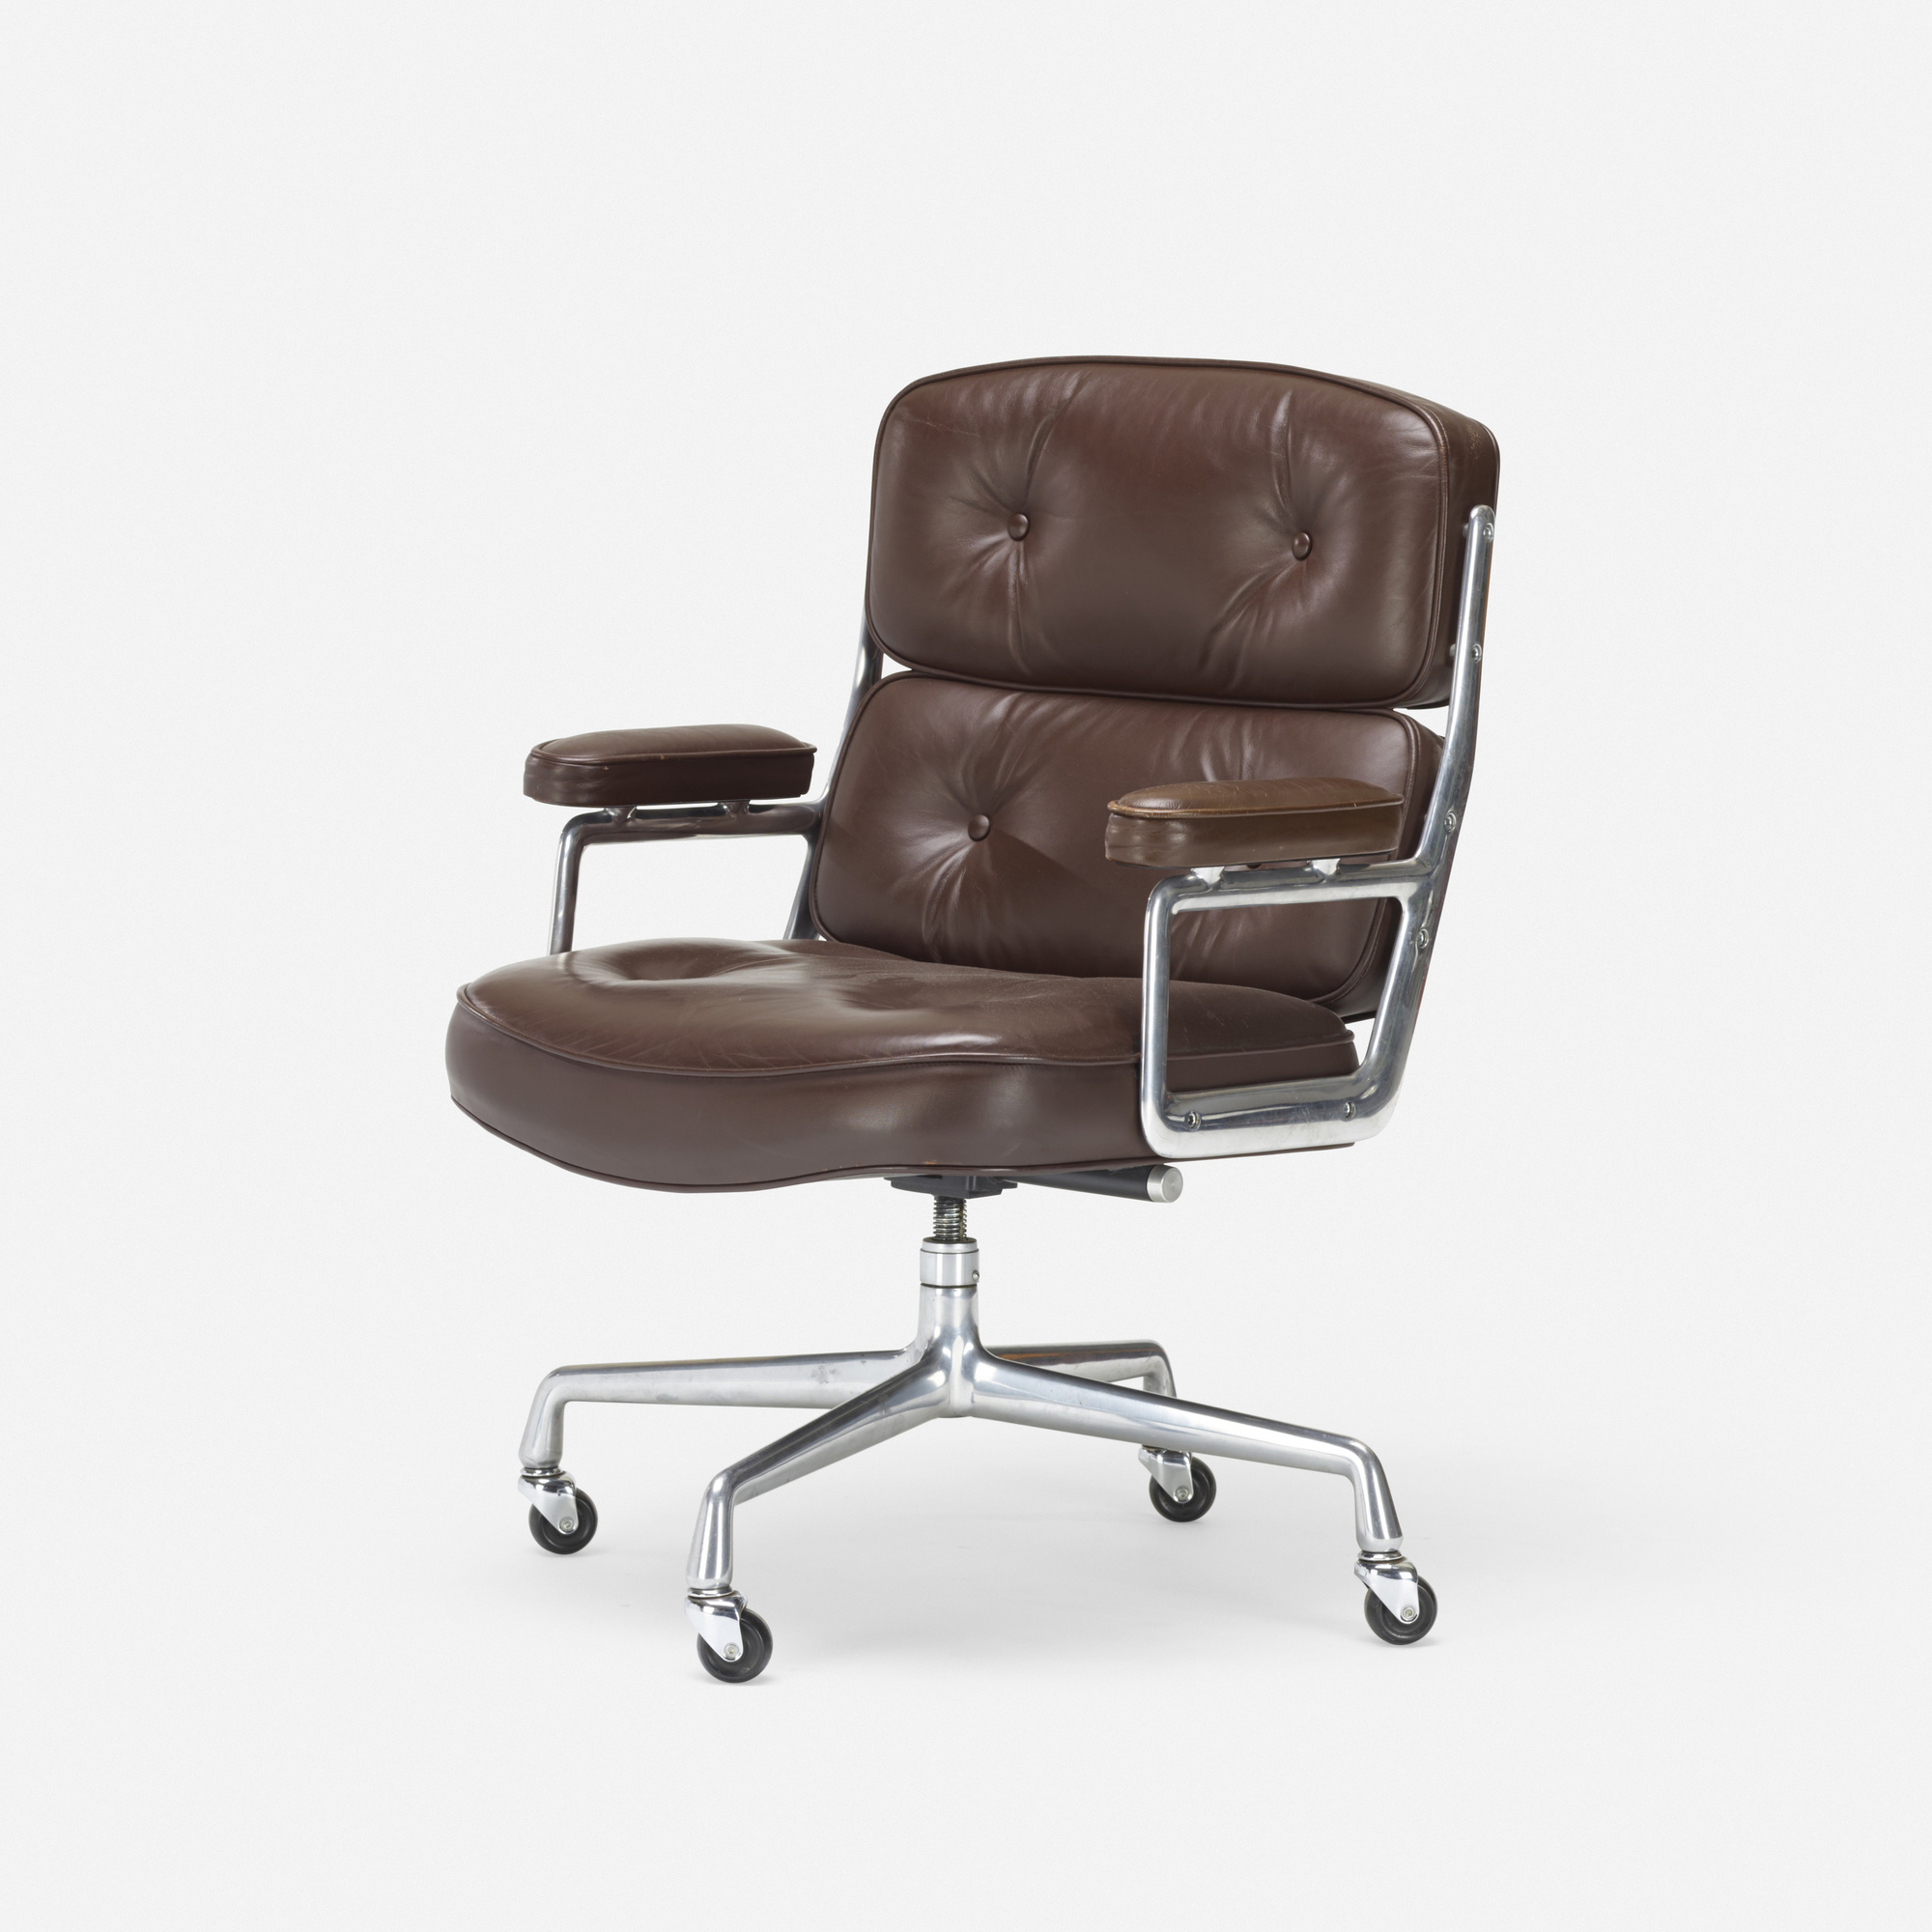 258: Charles and Ray Eames / Time Life armchair (1 of 3)